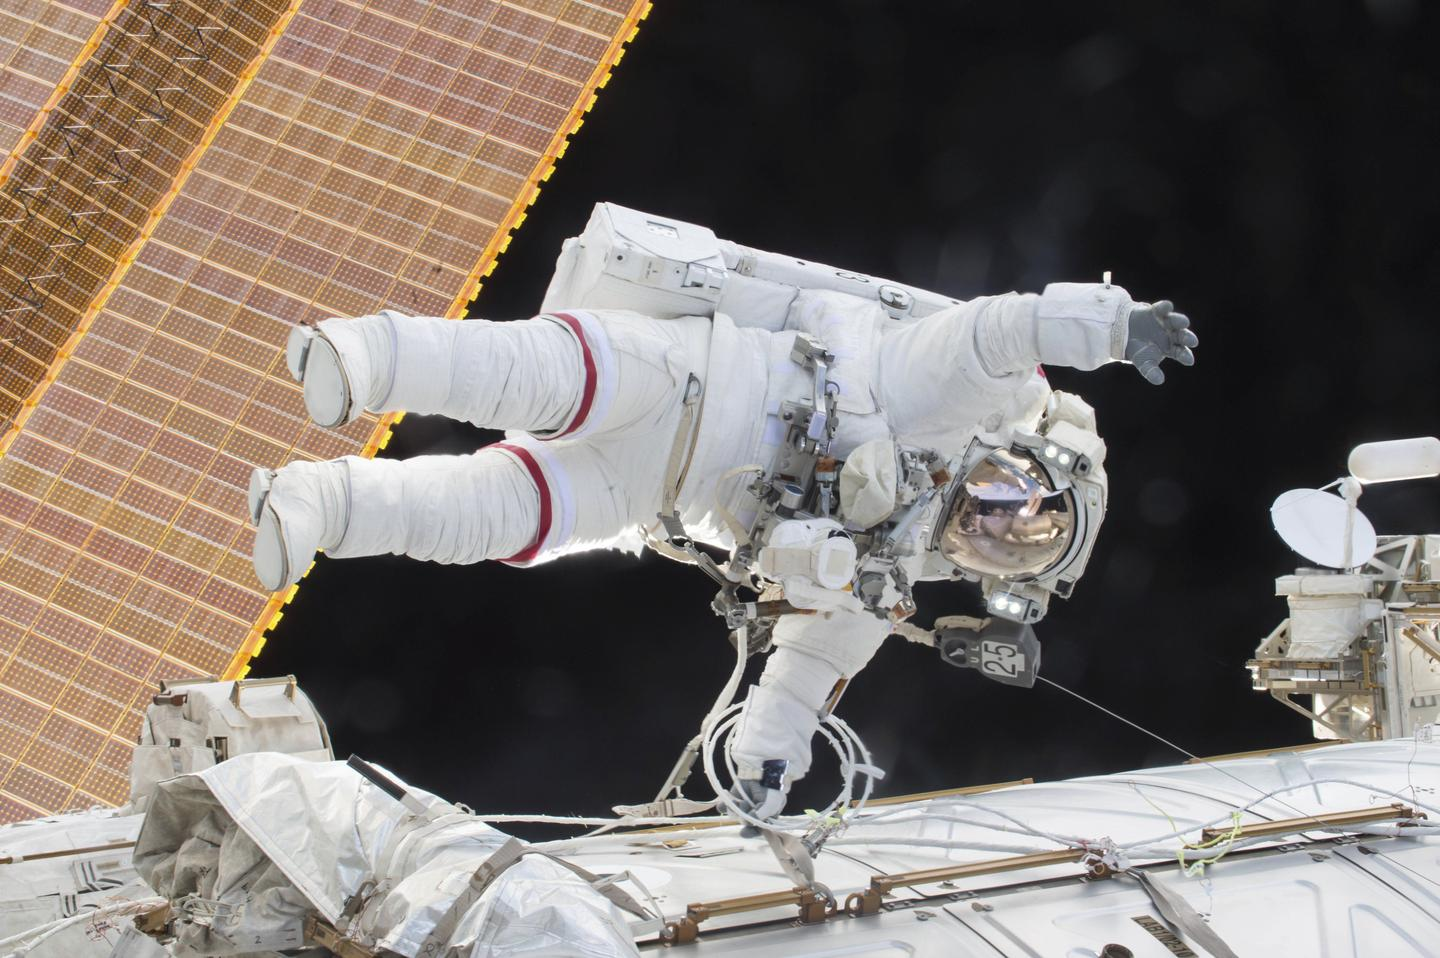 What Health Hazards Do Astronauts Face in Deep Space?